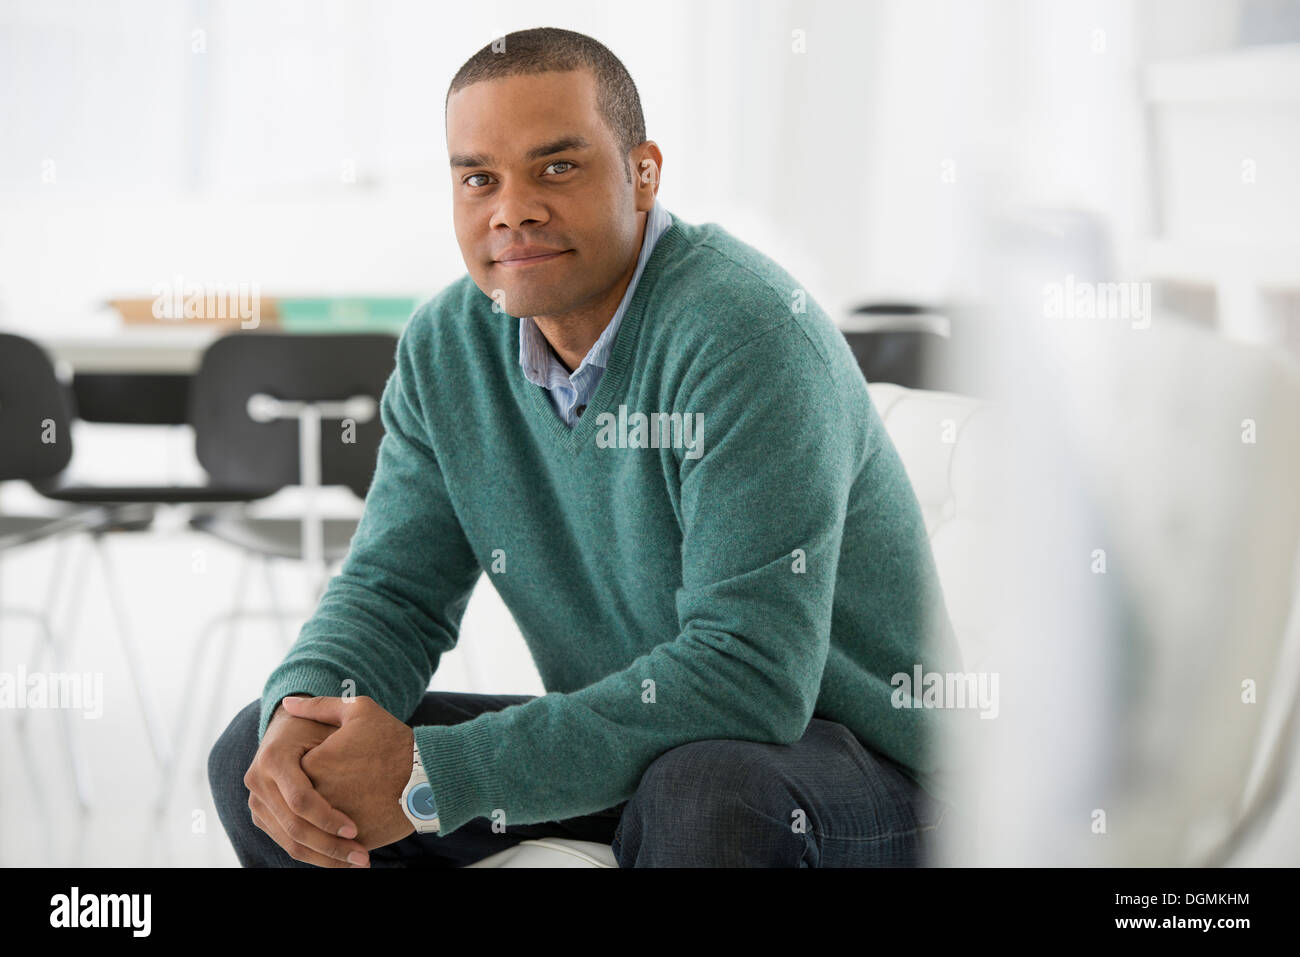 Business. A man sitting, hands clasped in a relaxed confident pose. - Stock Image